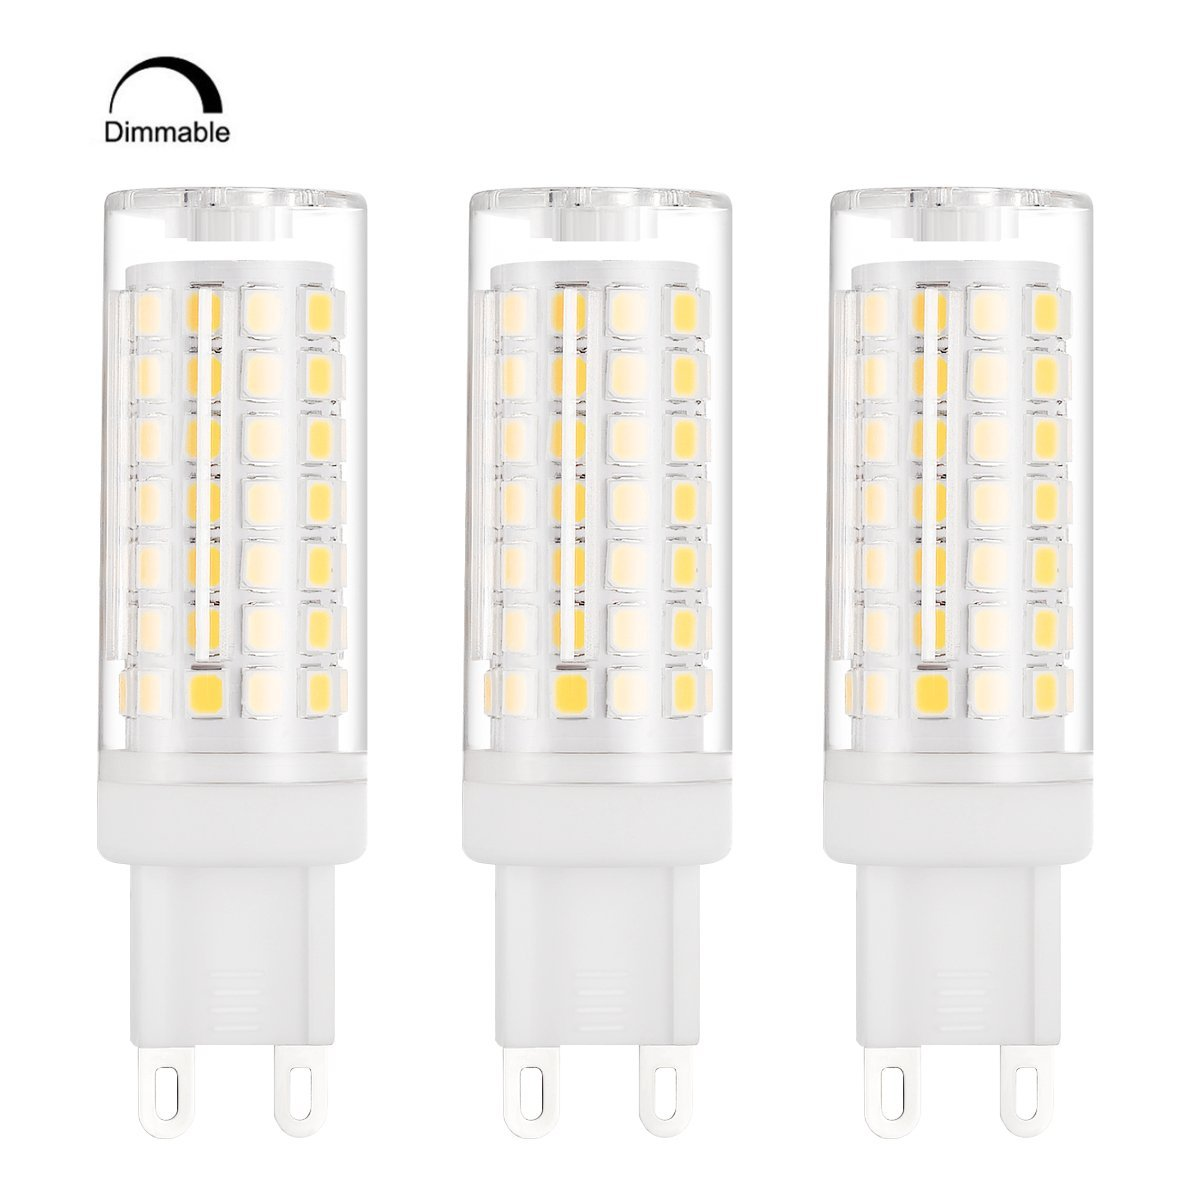 Bogao G9 Base 88 - SMD 2835 8W LED Light Bulb, 600-700LM, Equivalent to 70W Halogen Lamp Replacement, AC 110V-130V, 360 Omni-direction Beam Angle, Dimmable 3000K (3 Pack warm White)